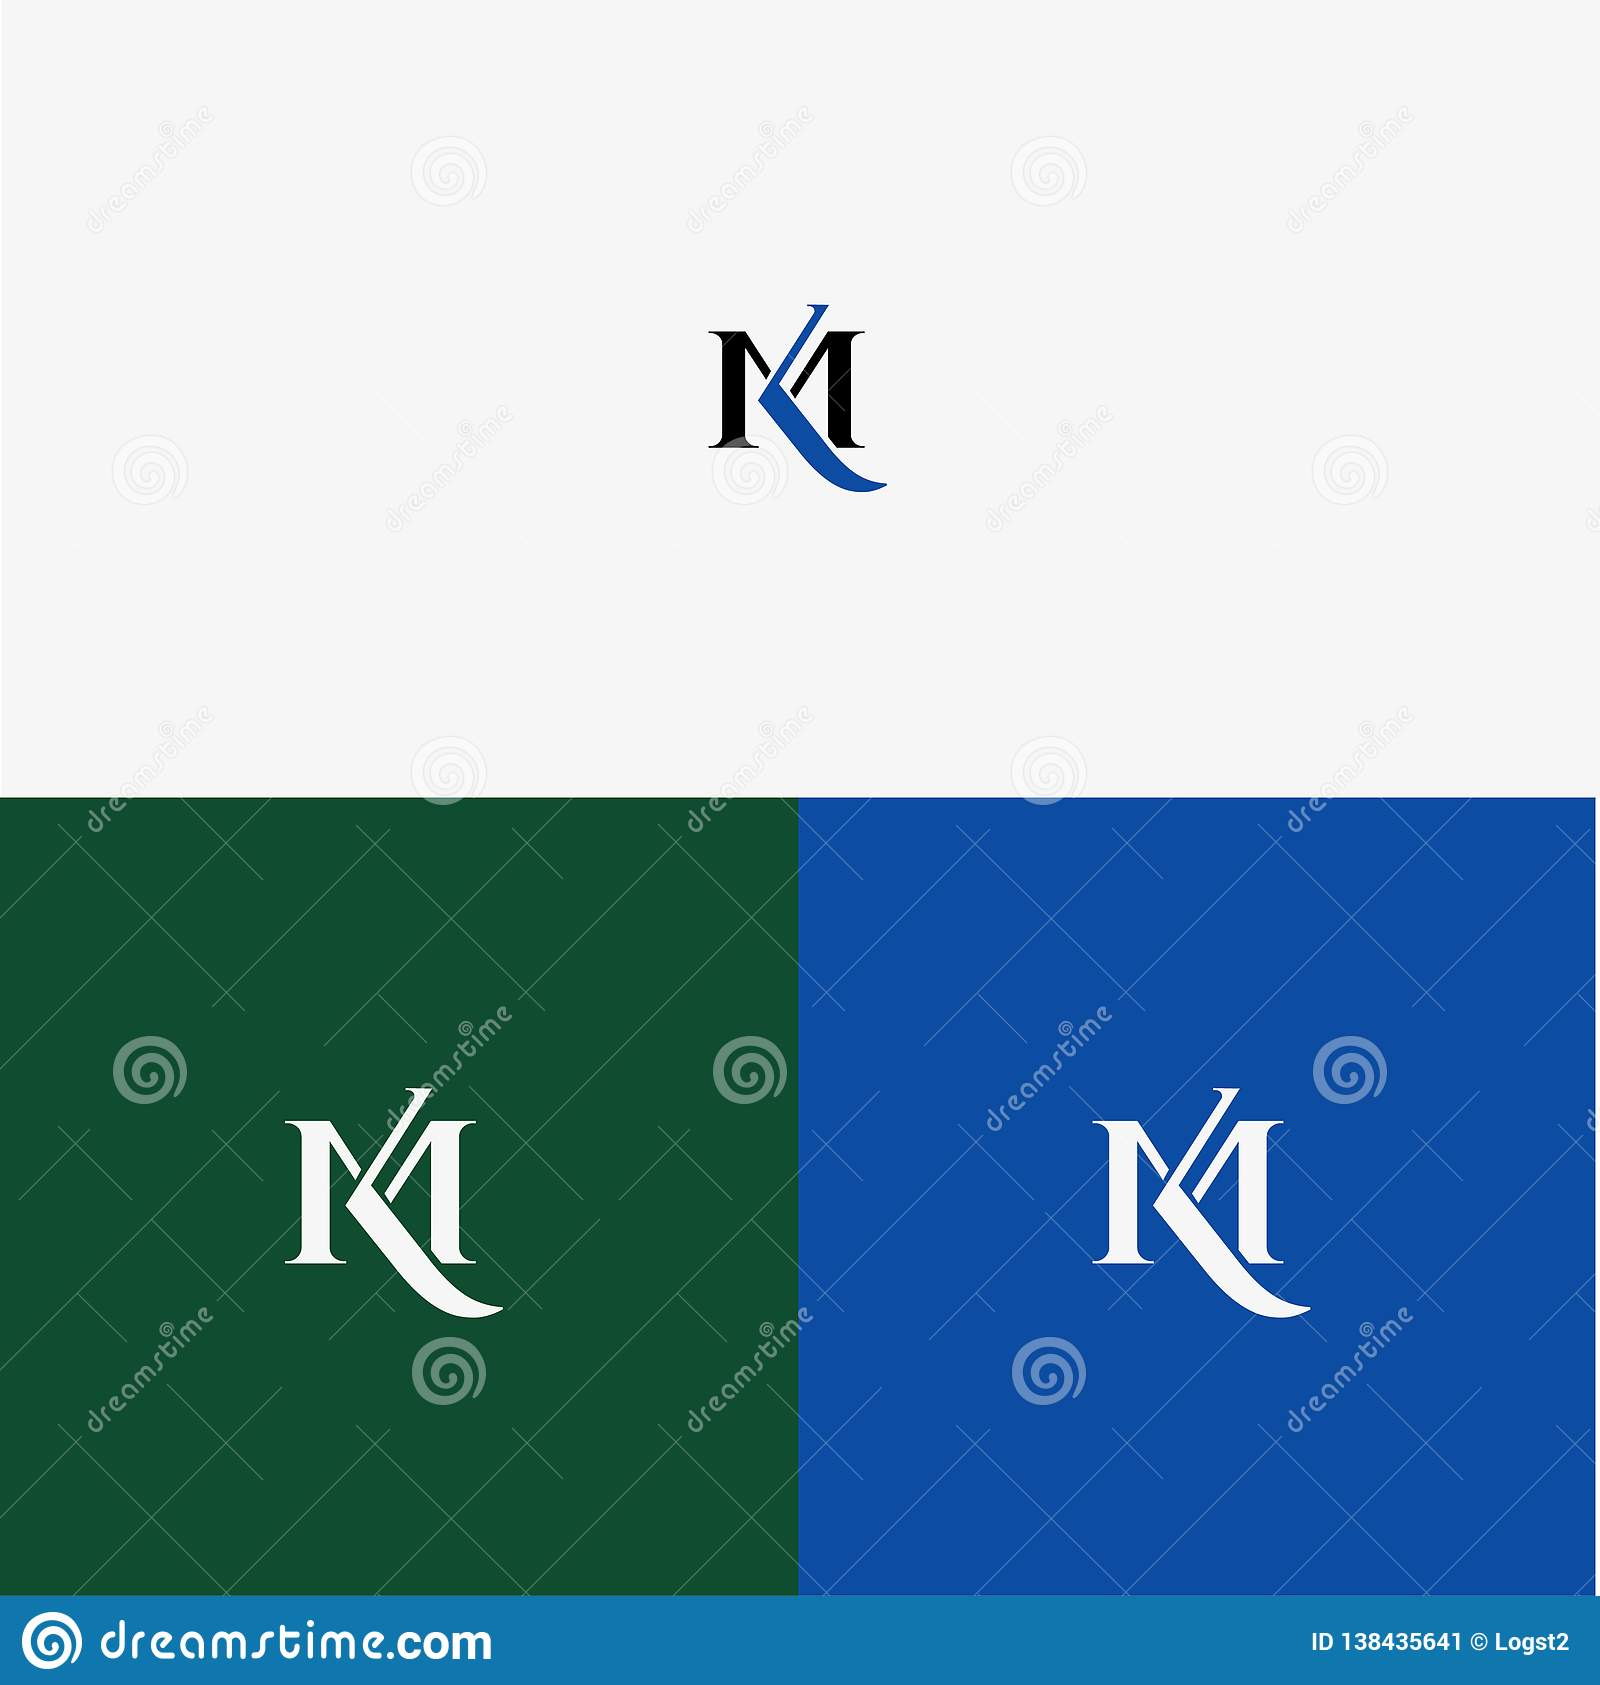 K M Vector Logo Business Logo Km Letters Of The Alphabet Monogram Stock Vector Illustration Of Abstract Initial 138435641